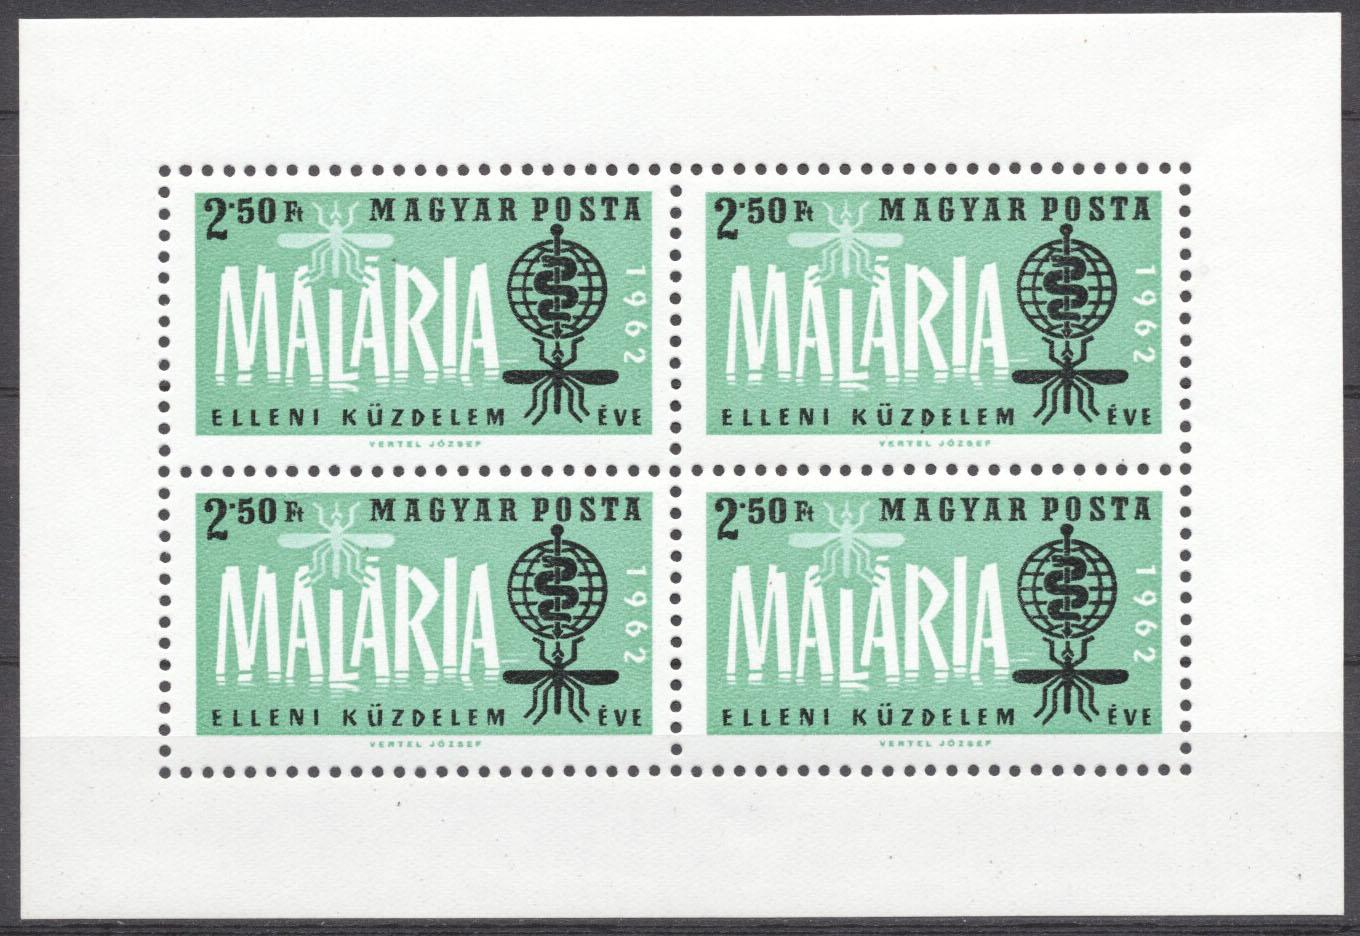 Stamps with Insects, Malaria from Hungary (image for product #167625)